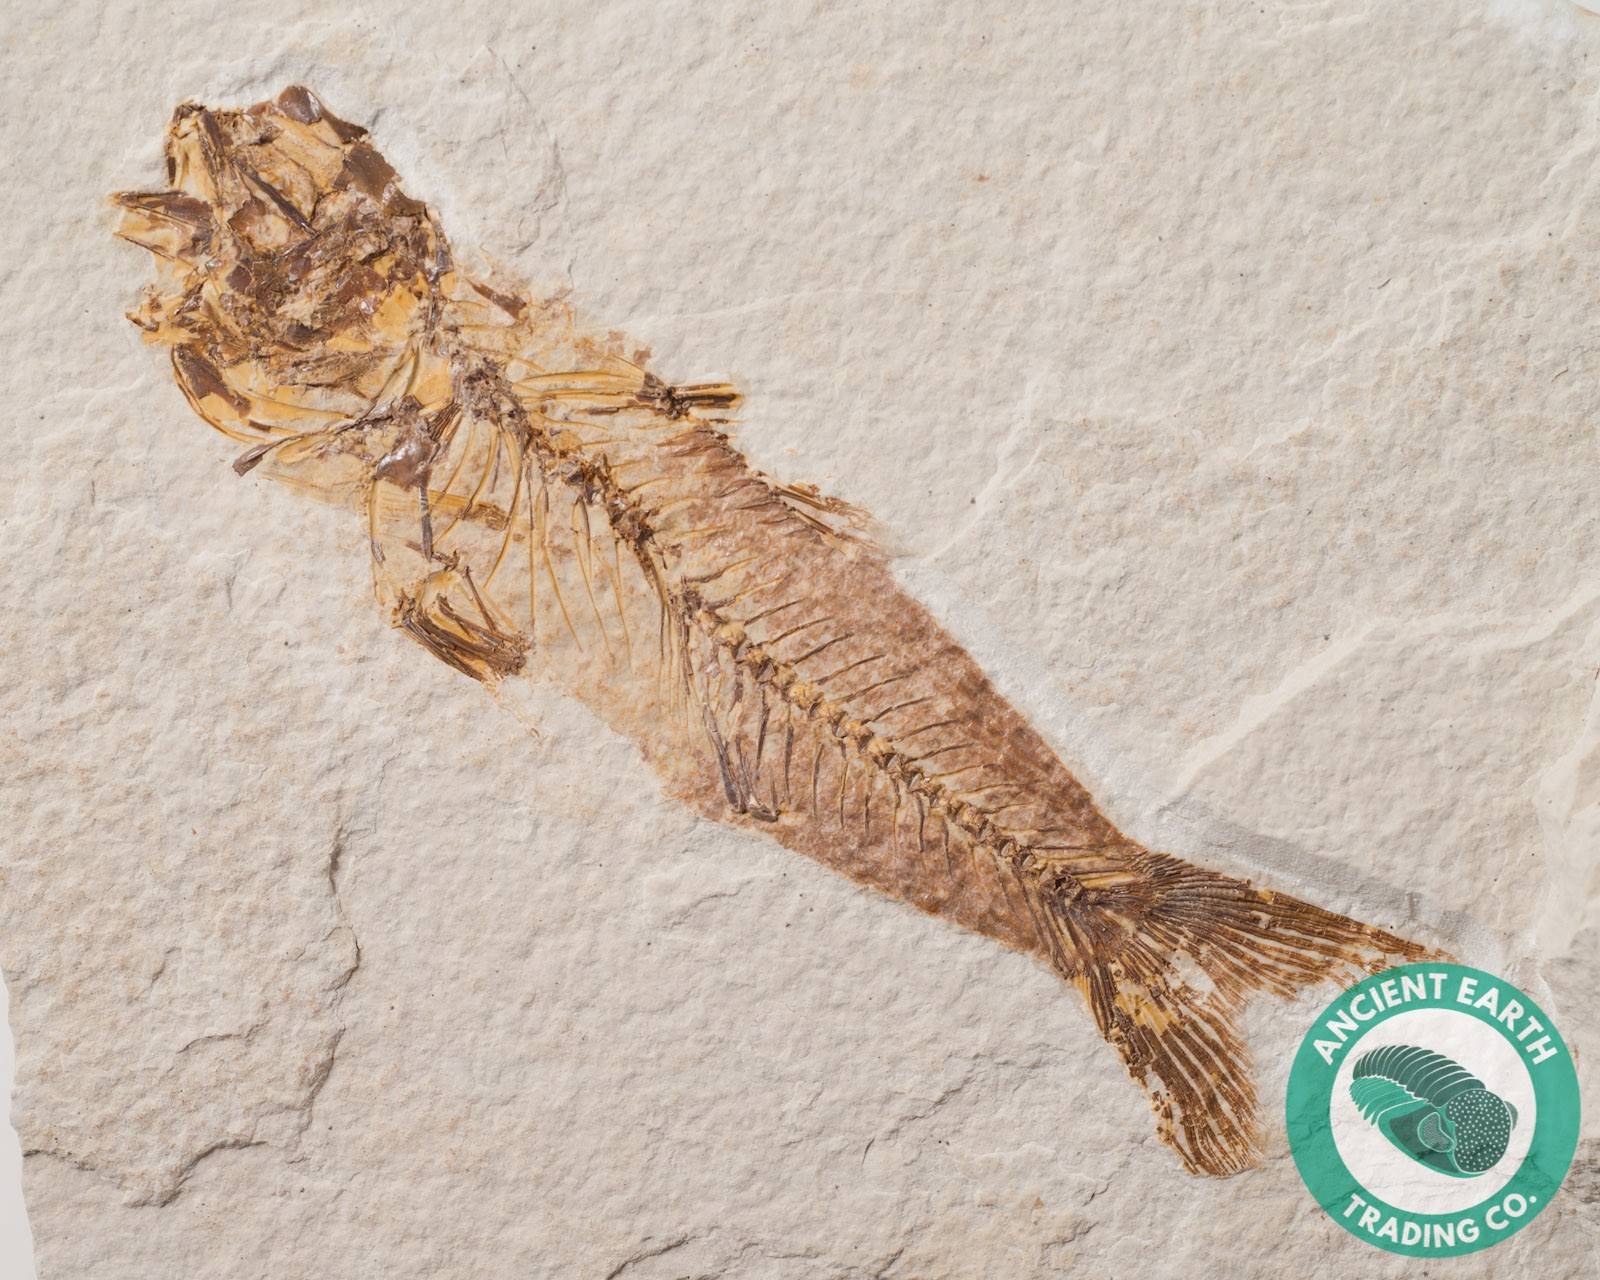 Rare Amphiplaga Trout Fossil Fish from Green River Fm Wyoming - 4.3 x 1.2 in.